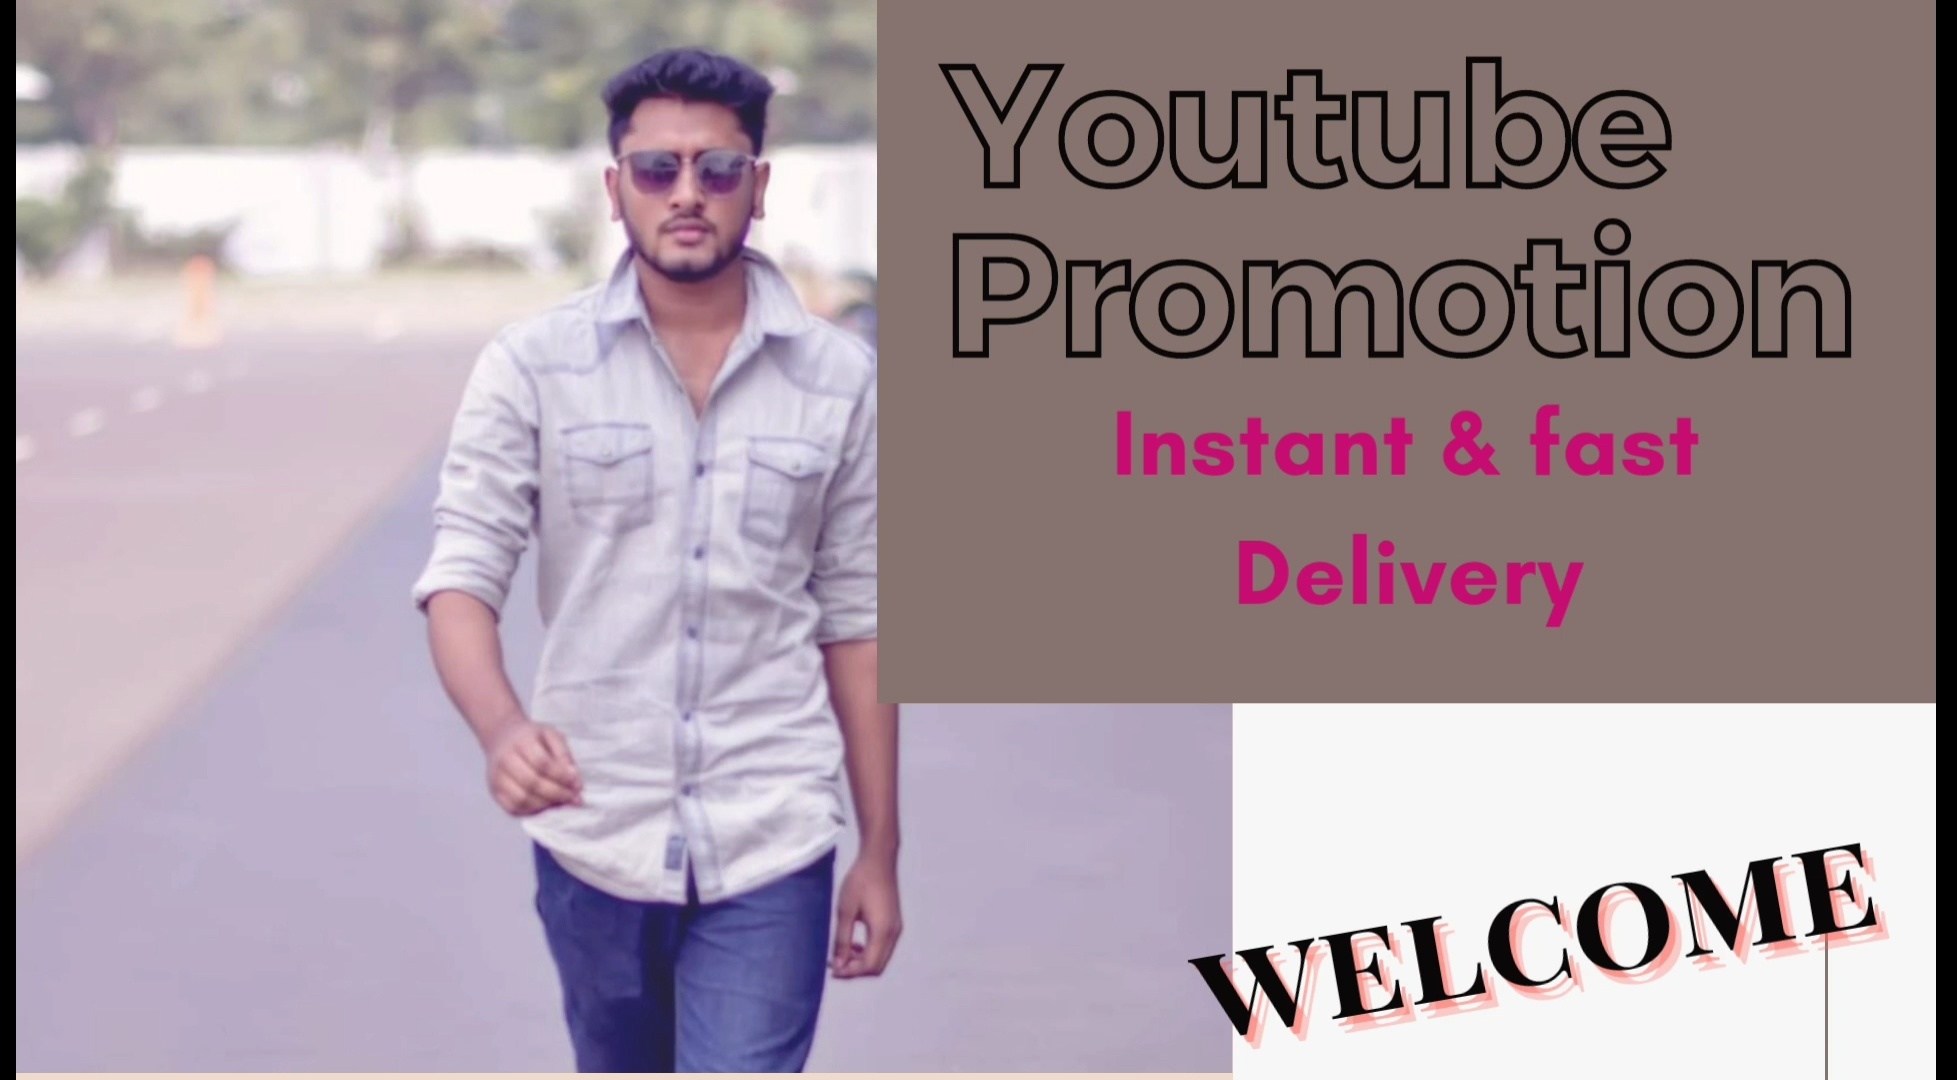 High Quality Youtube promotion safe & fast delivery by 3lion11